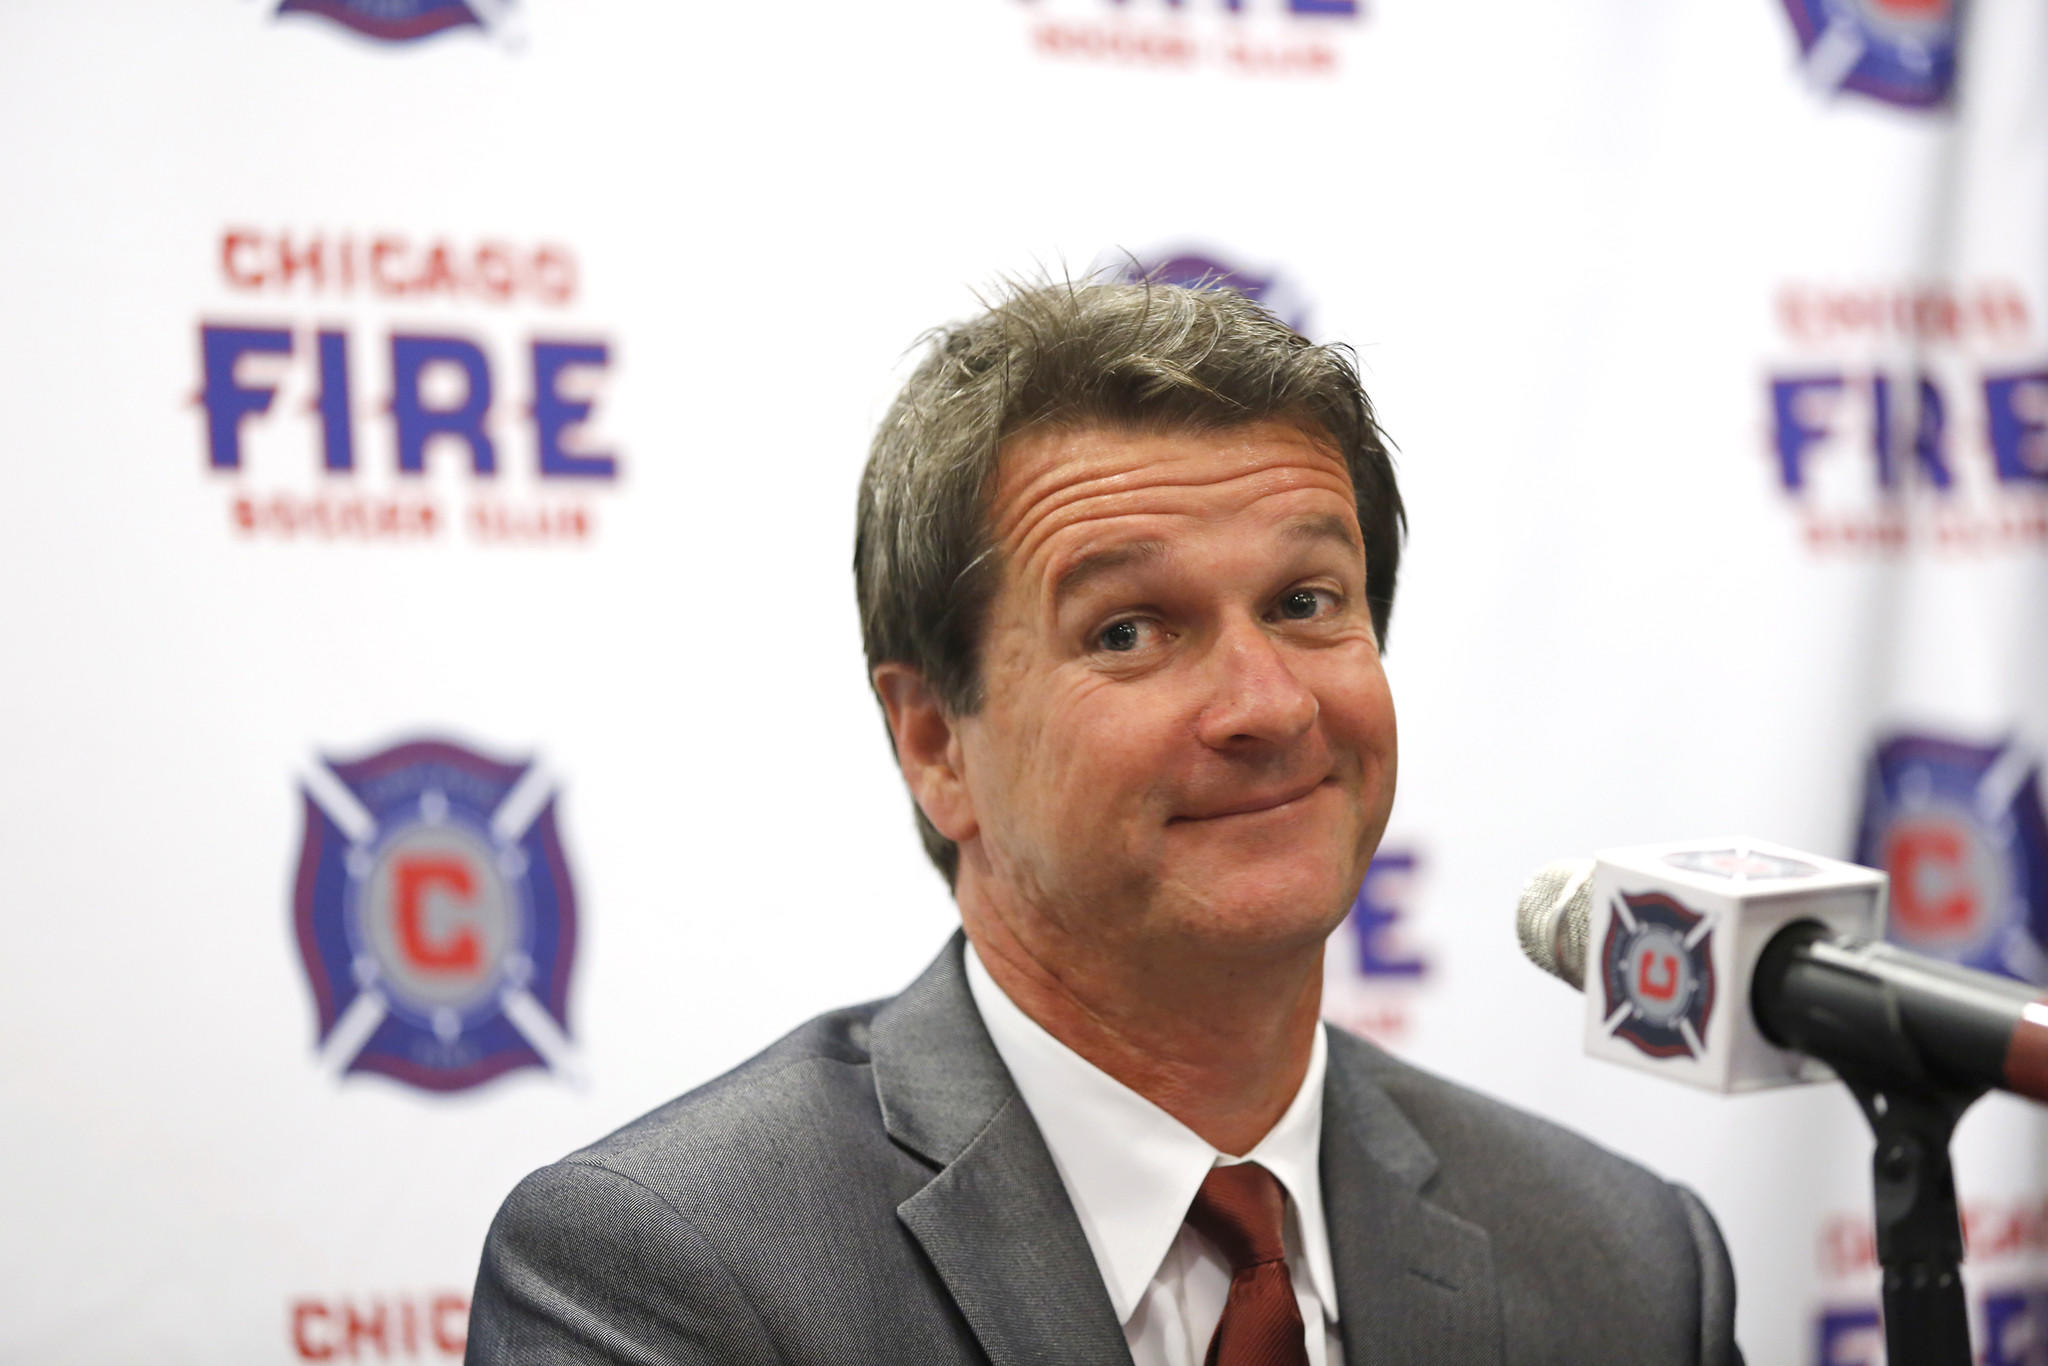 Frank Yallop was named the Chicago Fire Soccer Club's new head coach and director of soccer at a press conference, Thursday, Oct. 31, 2013 in Chicago.